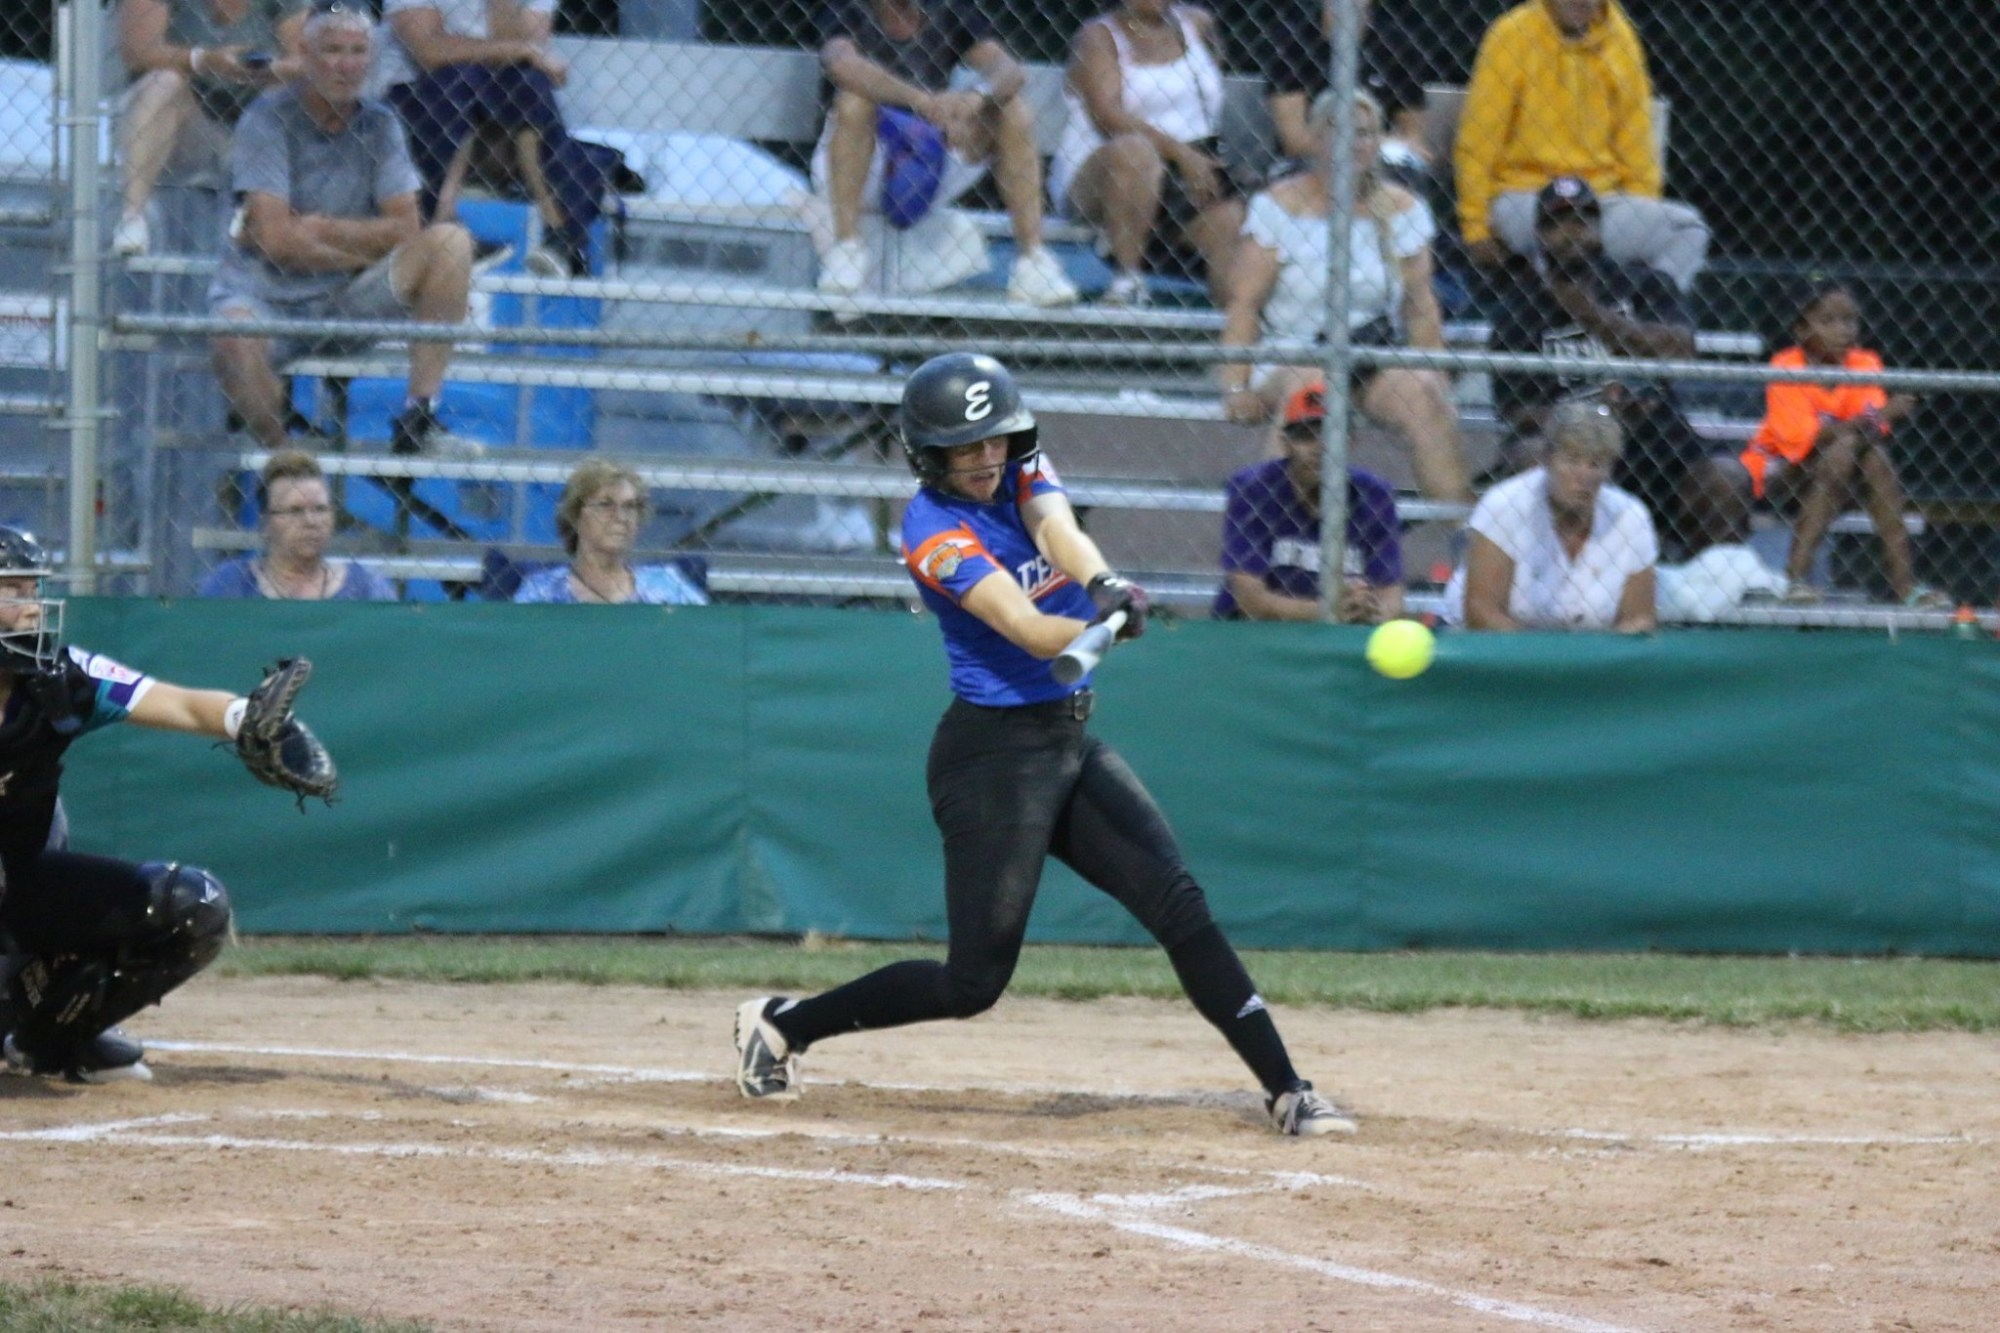 A photo of Courtney Hardin of the District 9 team. (Courtesy)